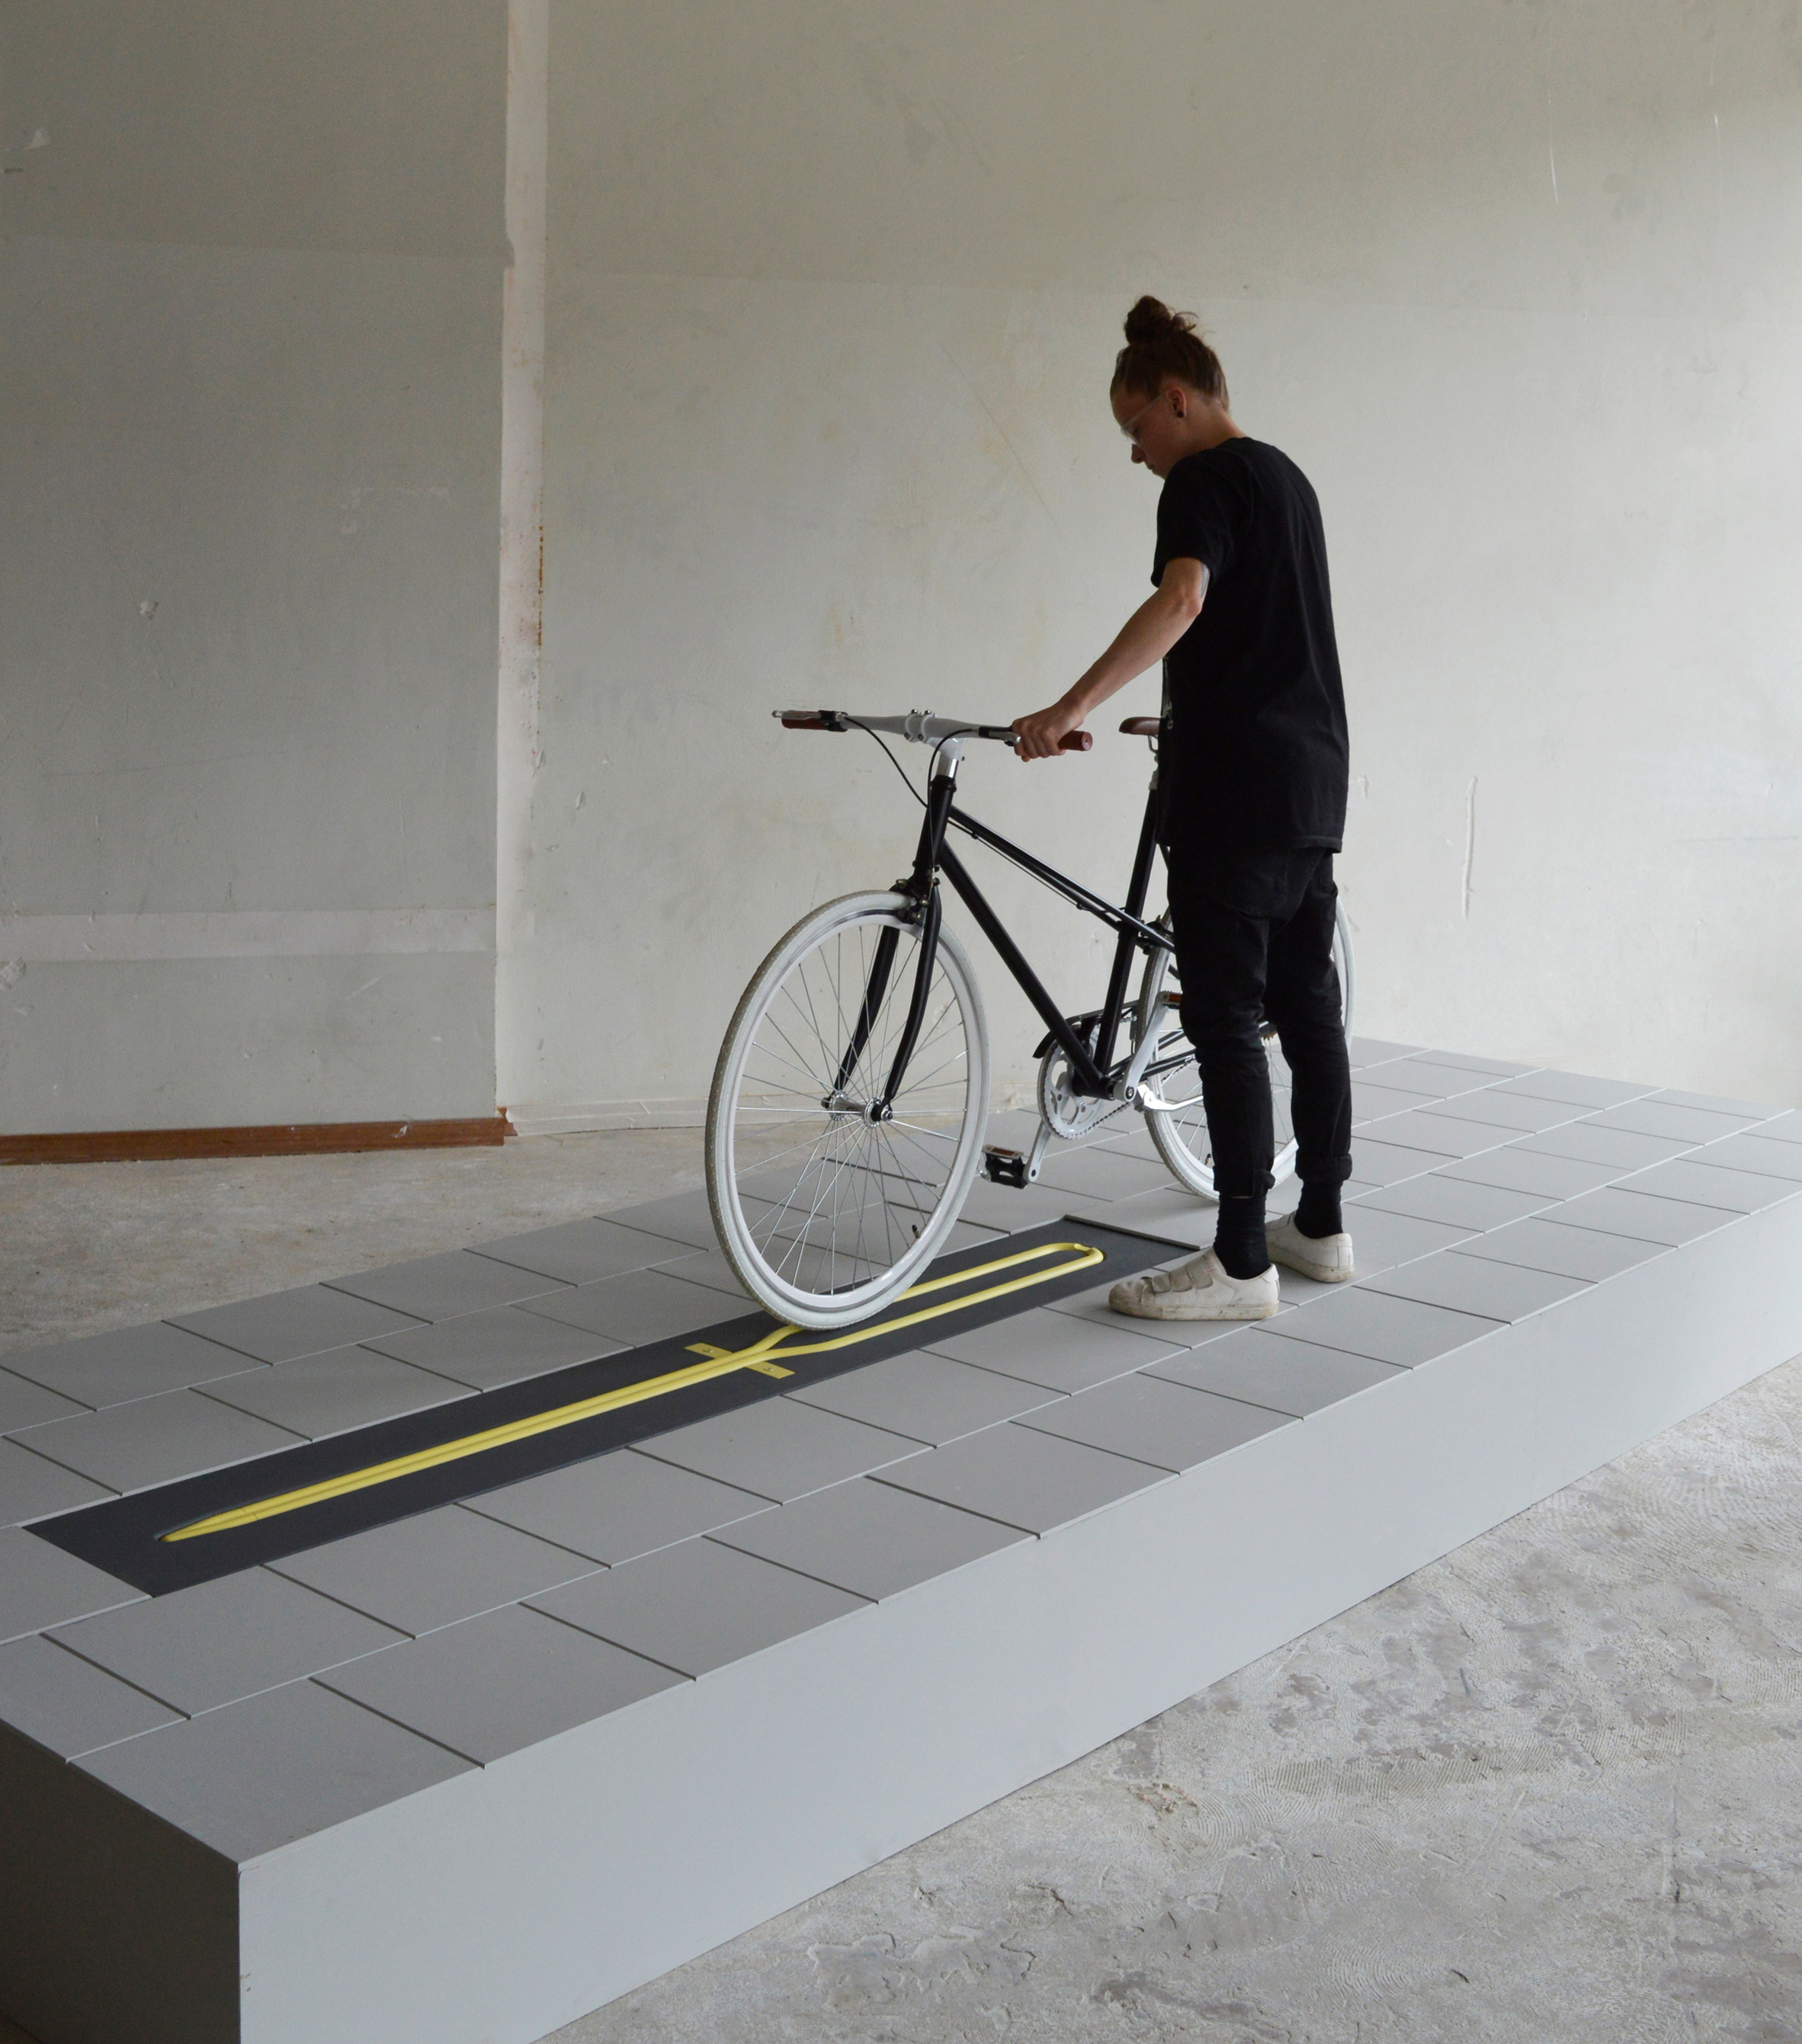 Milou Bergs' bicycle rack disappears into the pavement when not in use